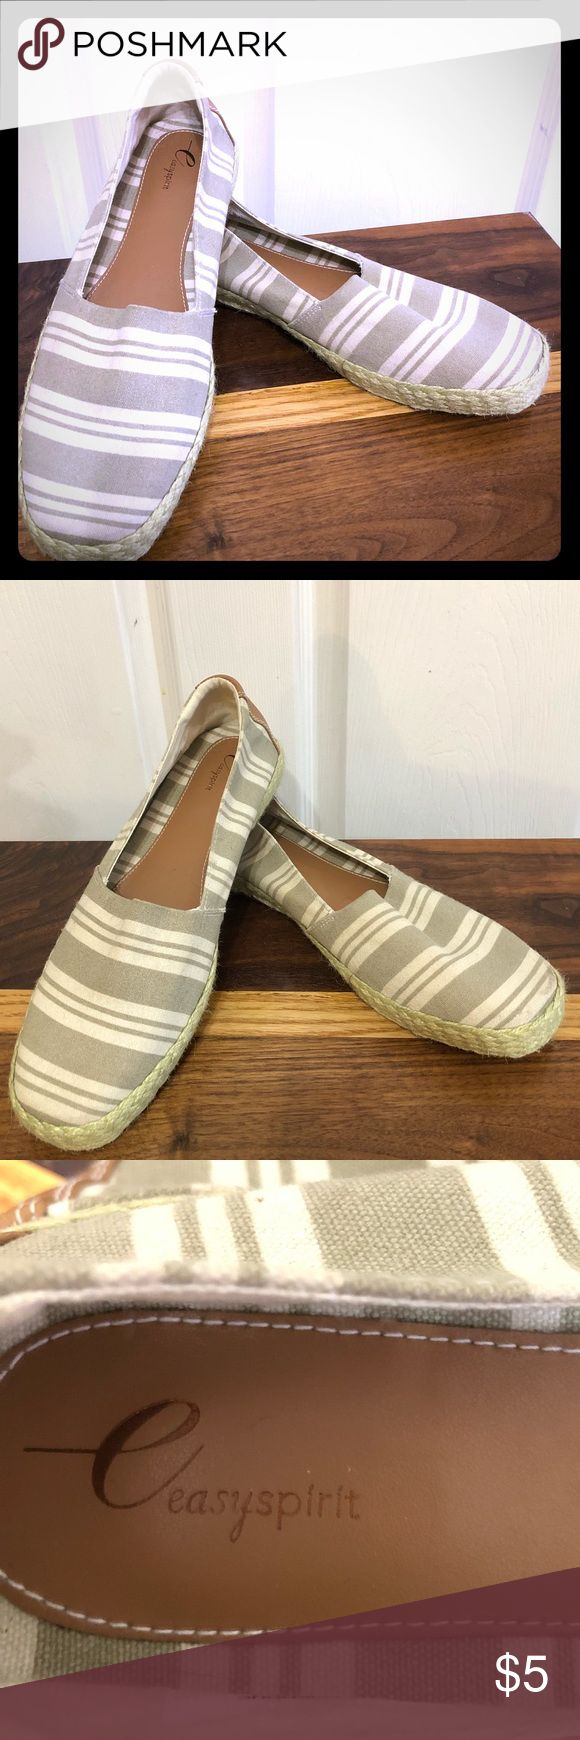 Easy Spirit Shoes Size 11 Easy Spirit Shoes Size 11   Excellent condition!!!  Canvas shoes Easy Spirit Shoes